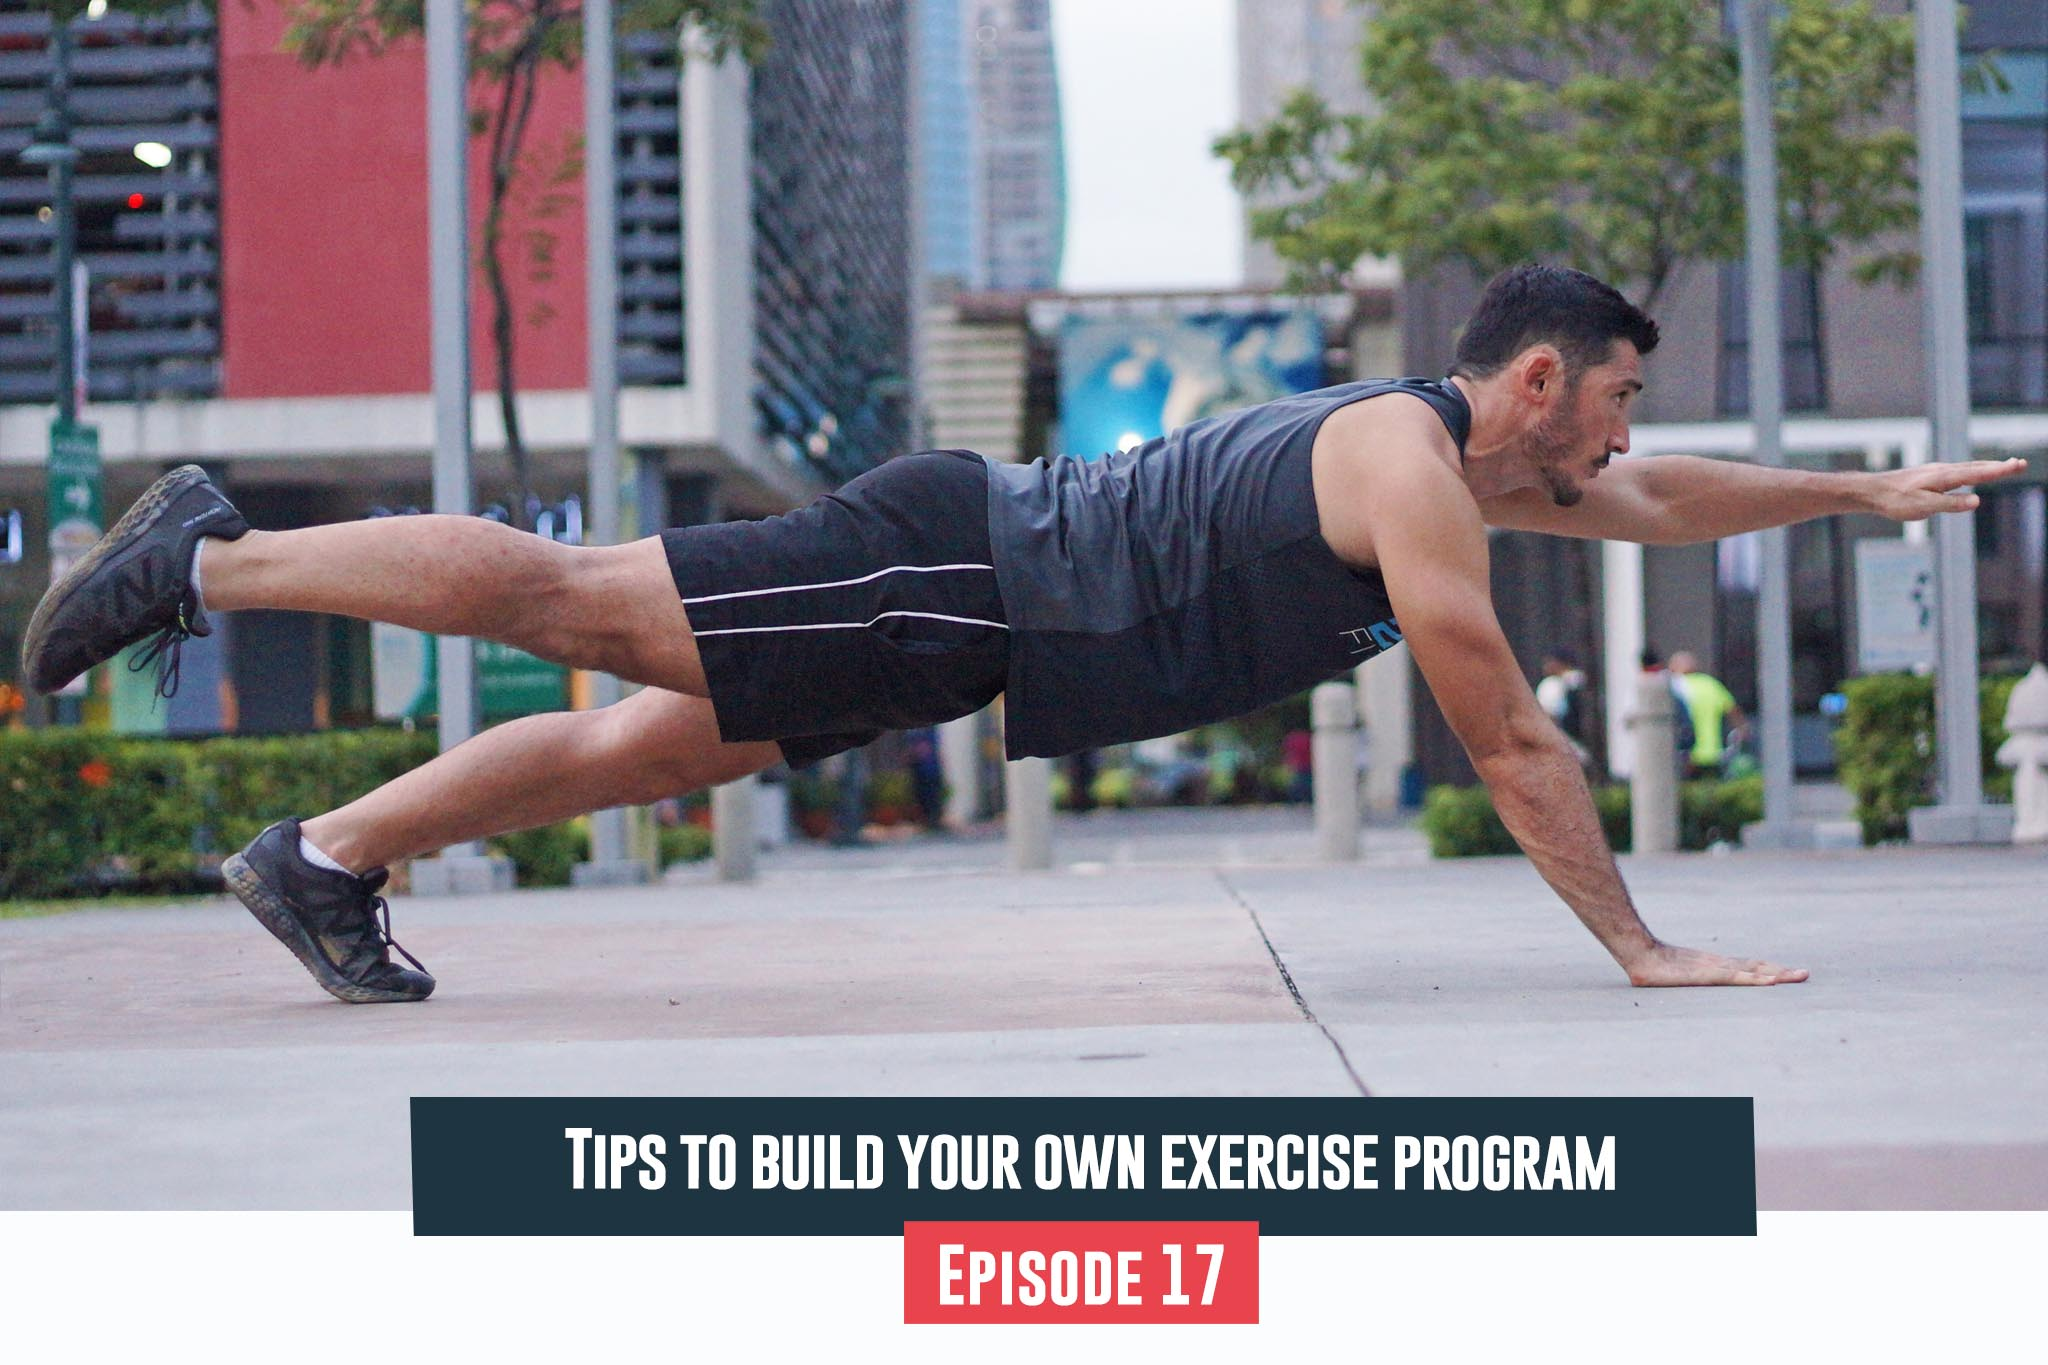 Build Your Own Exercise Program